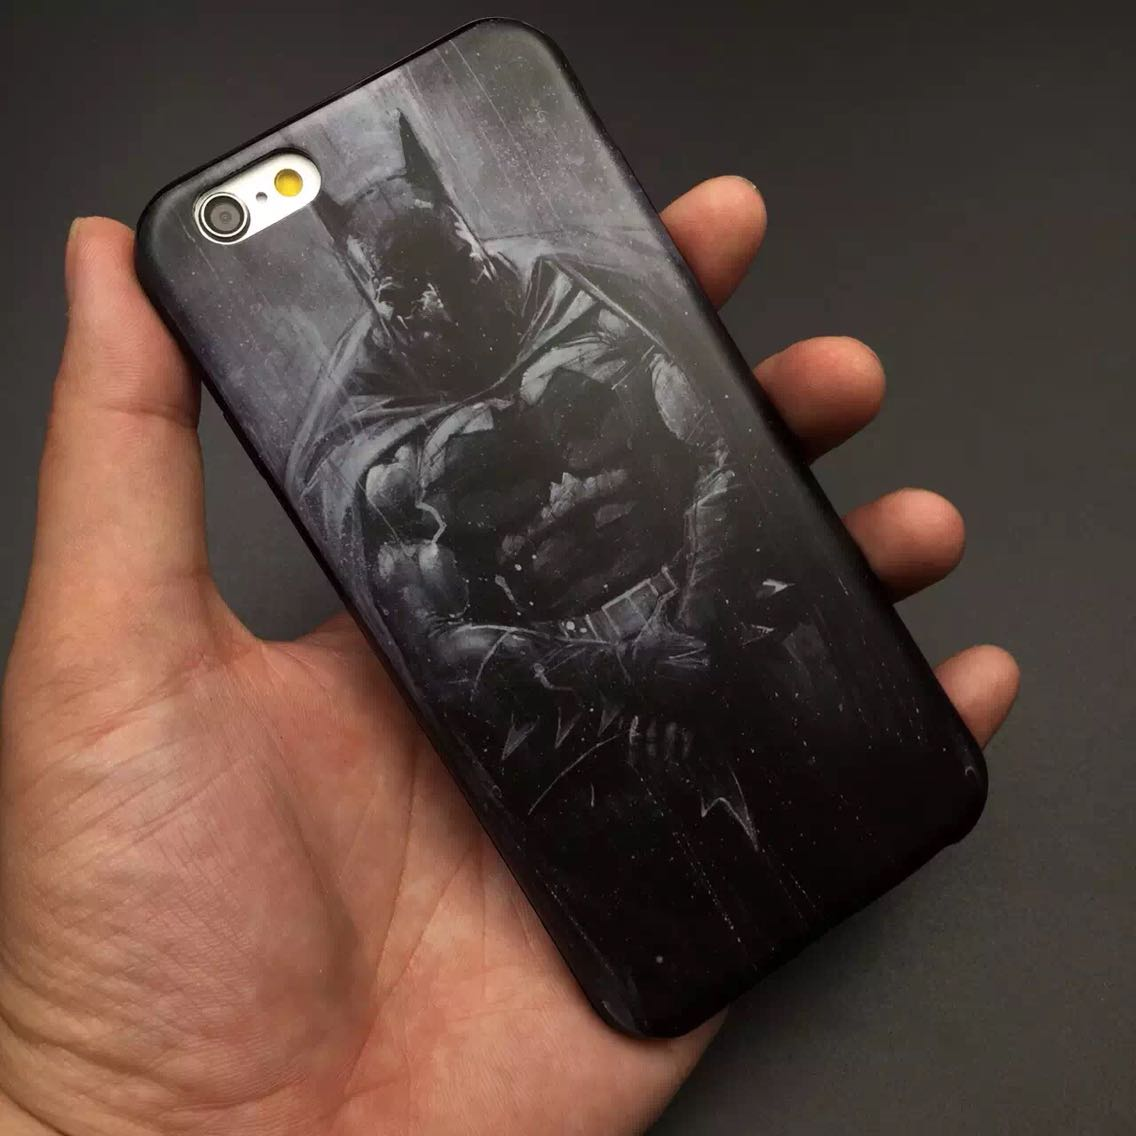 "Painting Captain America batman Phone Case For iPhone 6 6S Plus 4.7"" 5.5"" Case Hand Painted Black White Ultra Thin Back Cover(China (Mainland))"